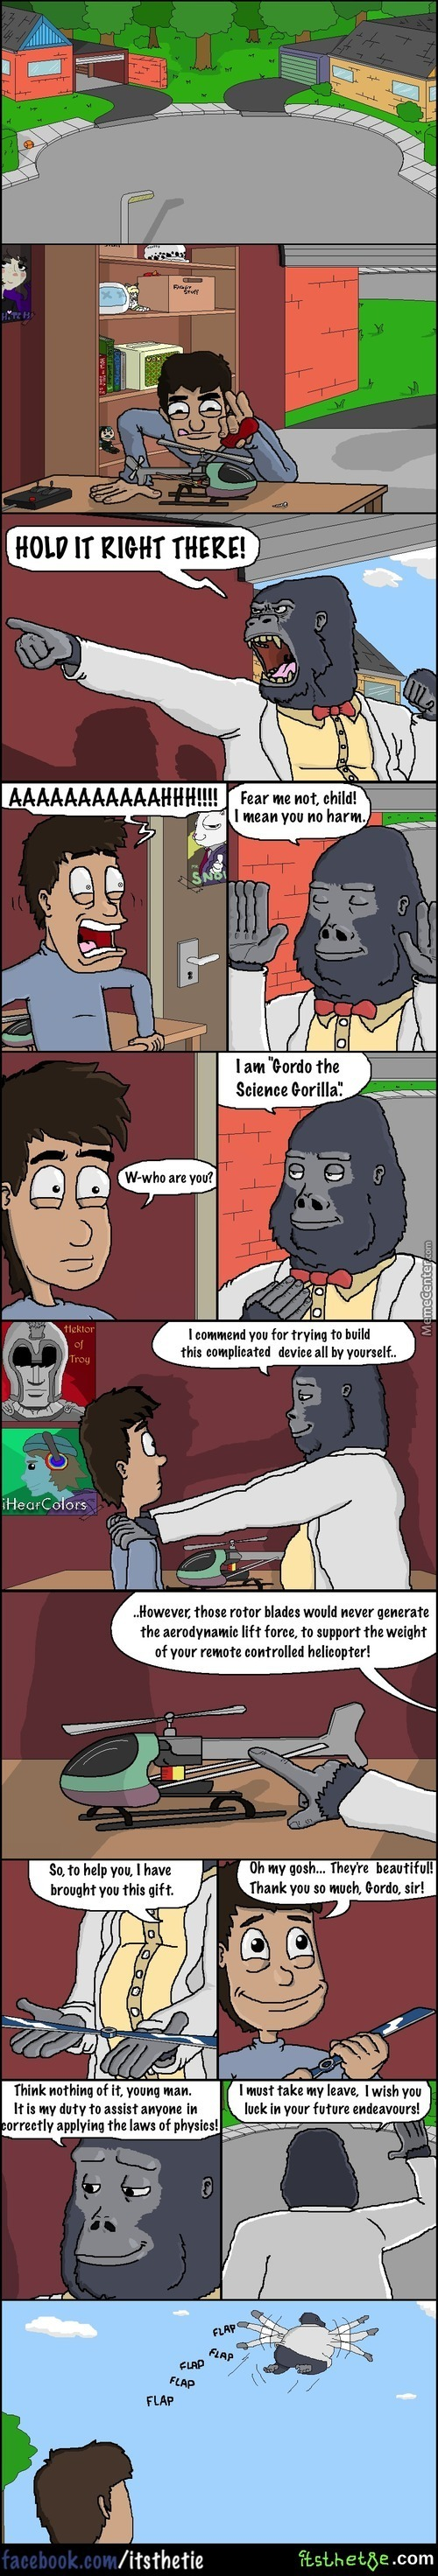 For Science (This Is An Older Comic I Drew With My Mouse In Ms Paint)